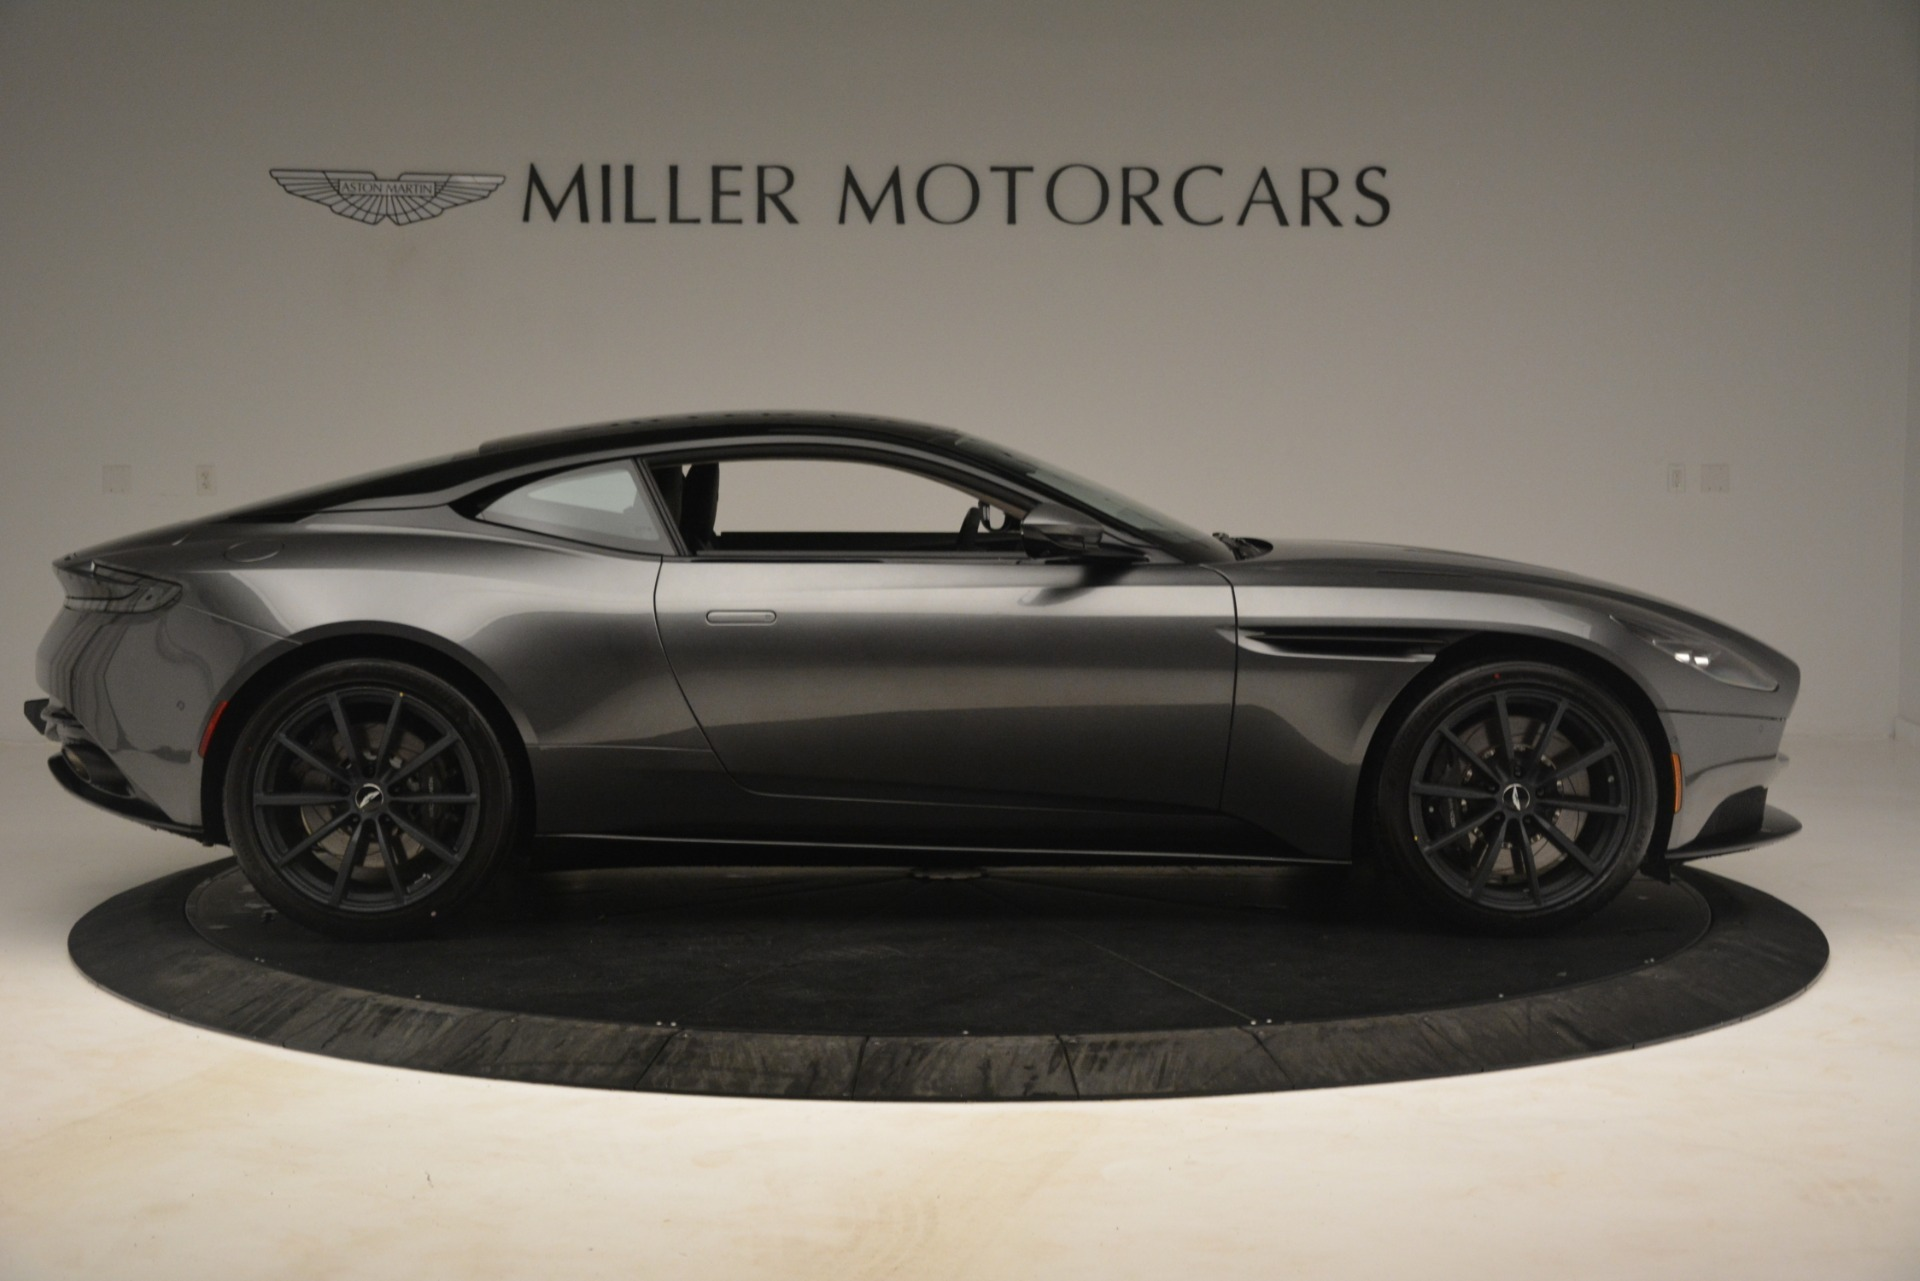 New 2019 Aston Martin DB11 V12 AMR Coupe For Sale In Westport, CT 3123_p9